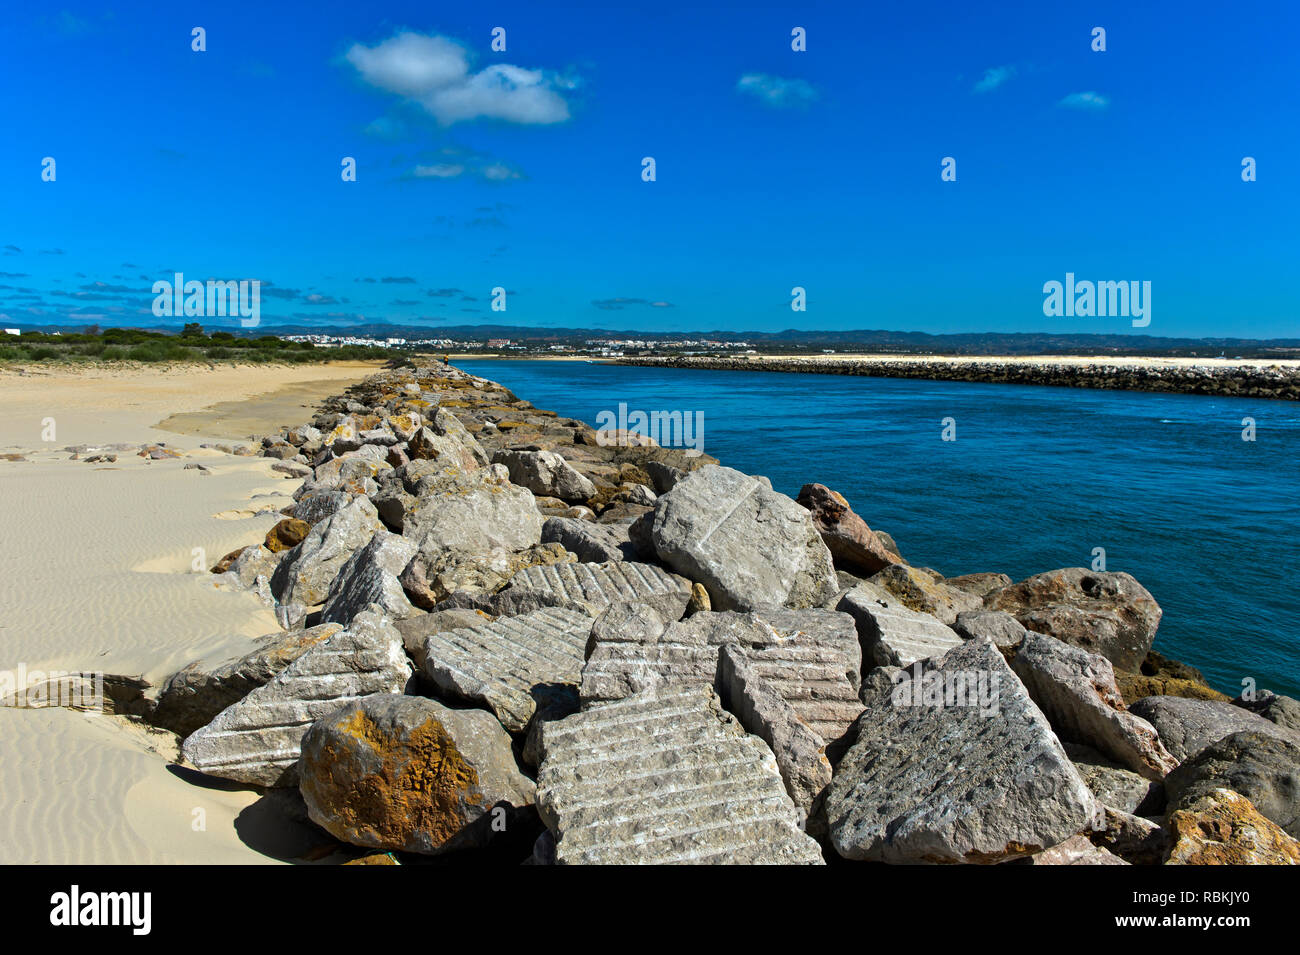 Boulders as protection of the litoral zone against rising sea levels at the mouth of the Gilao River, Tavira Island, Ilha de Tavira, Tavira, Algarve,  - Stock Image